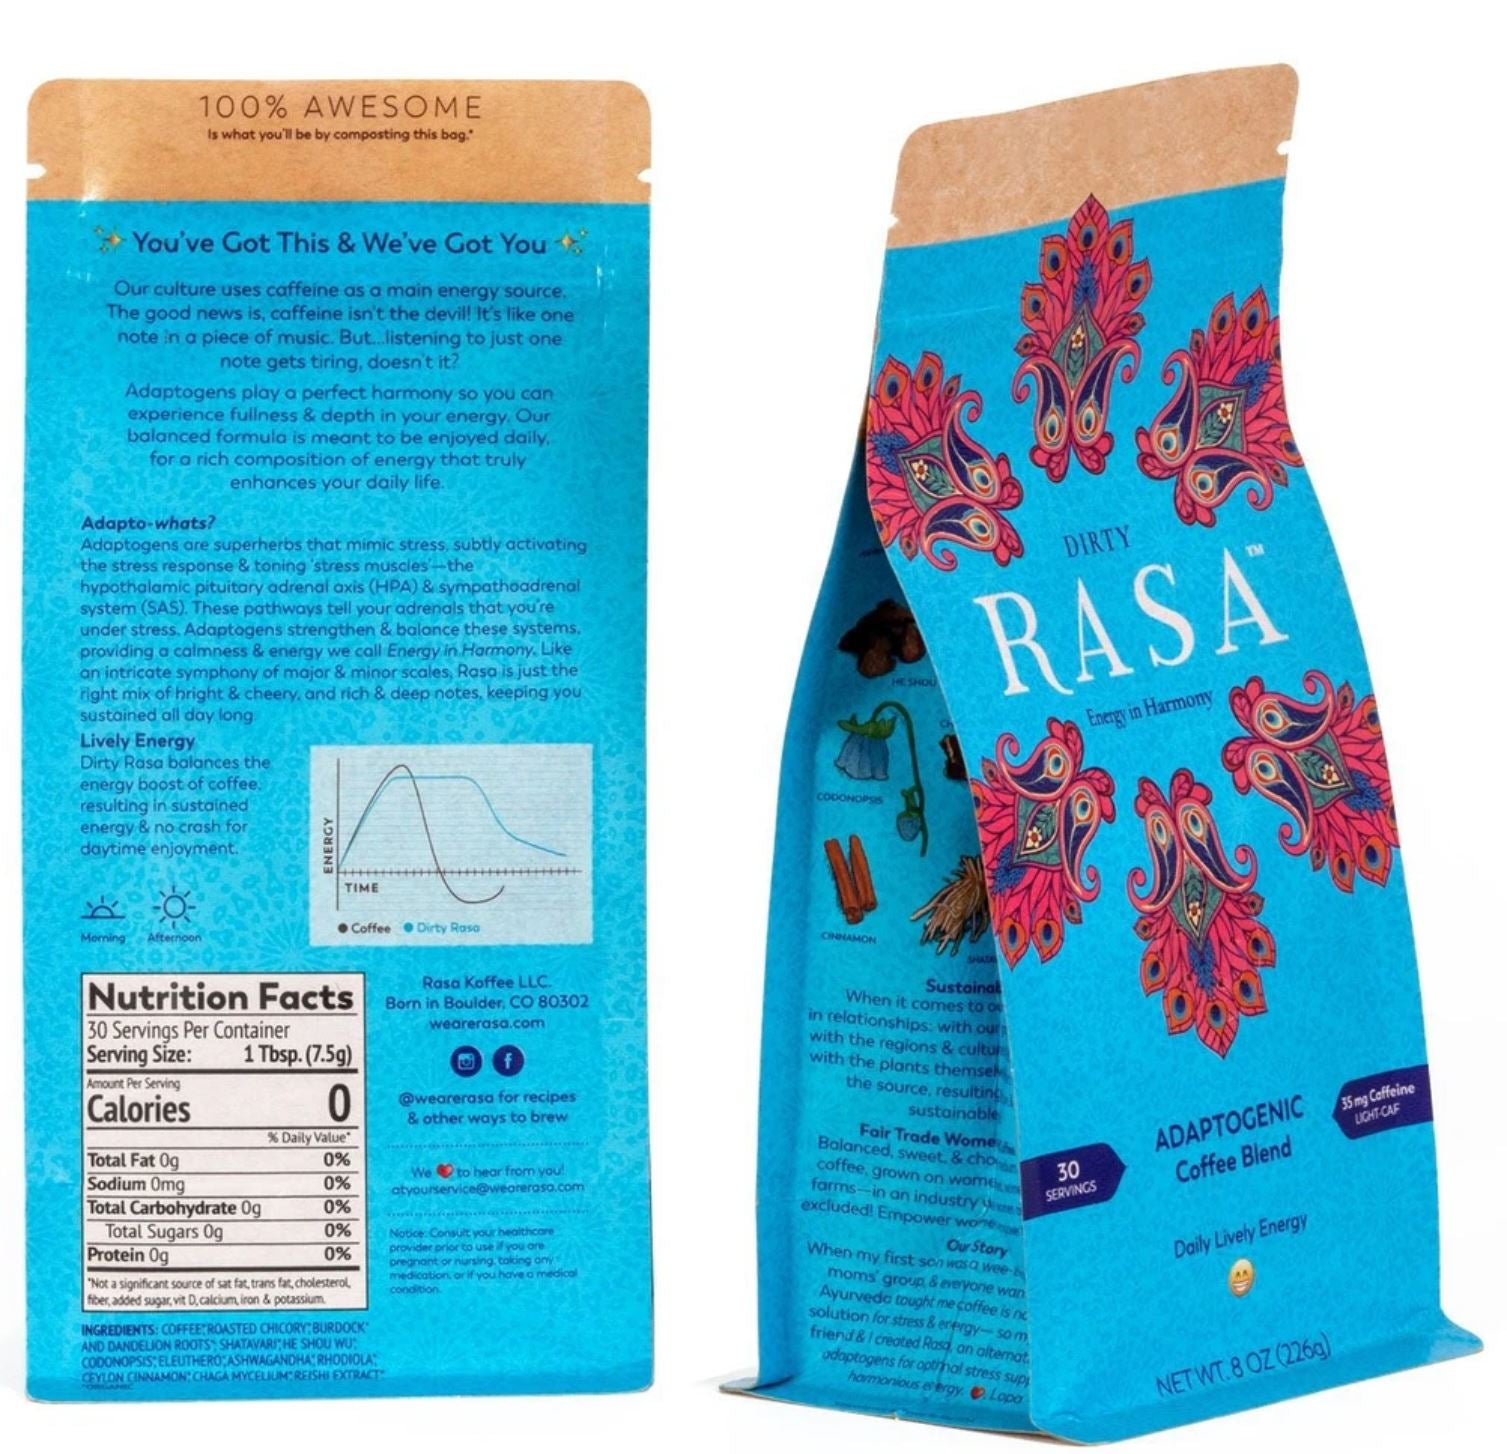 Dirty Rasa Adaptogenic Coffee Package with Back label and Nutrition Table